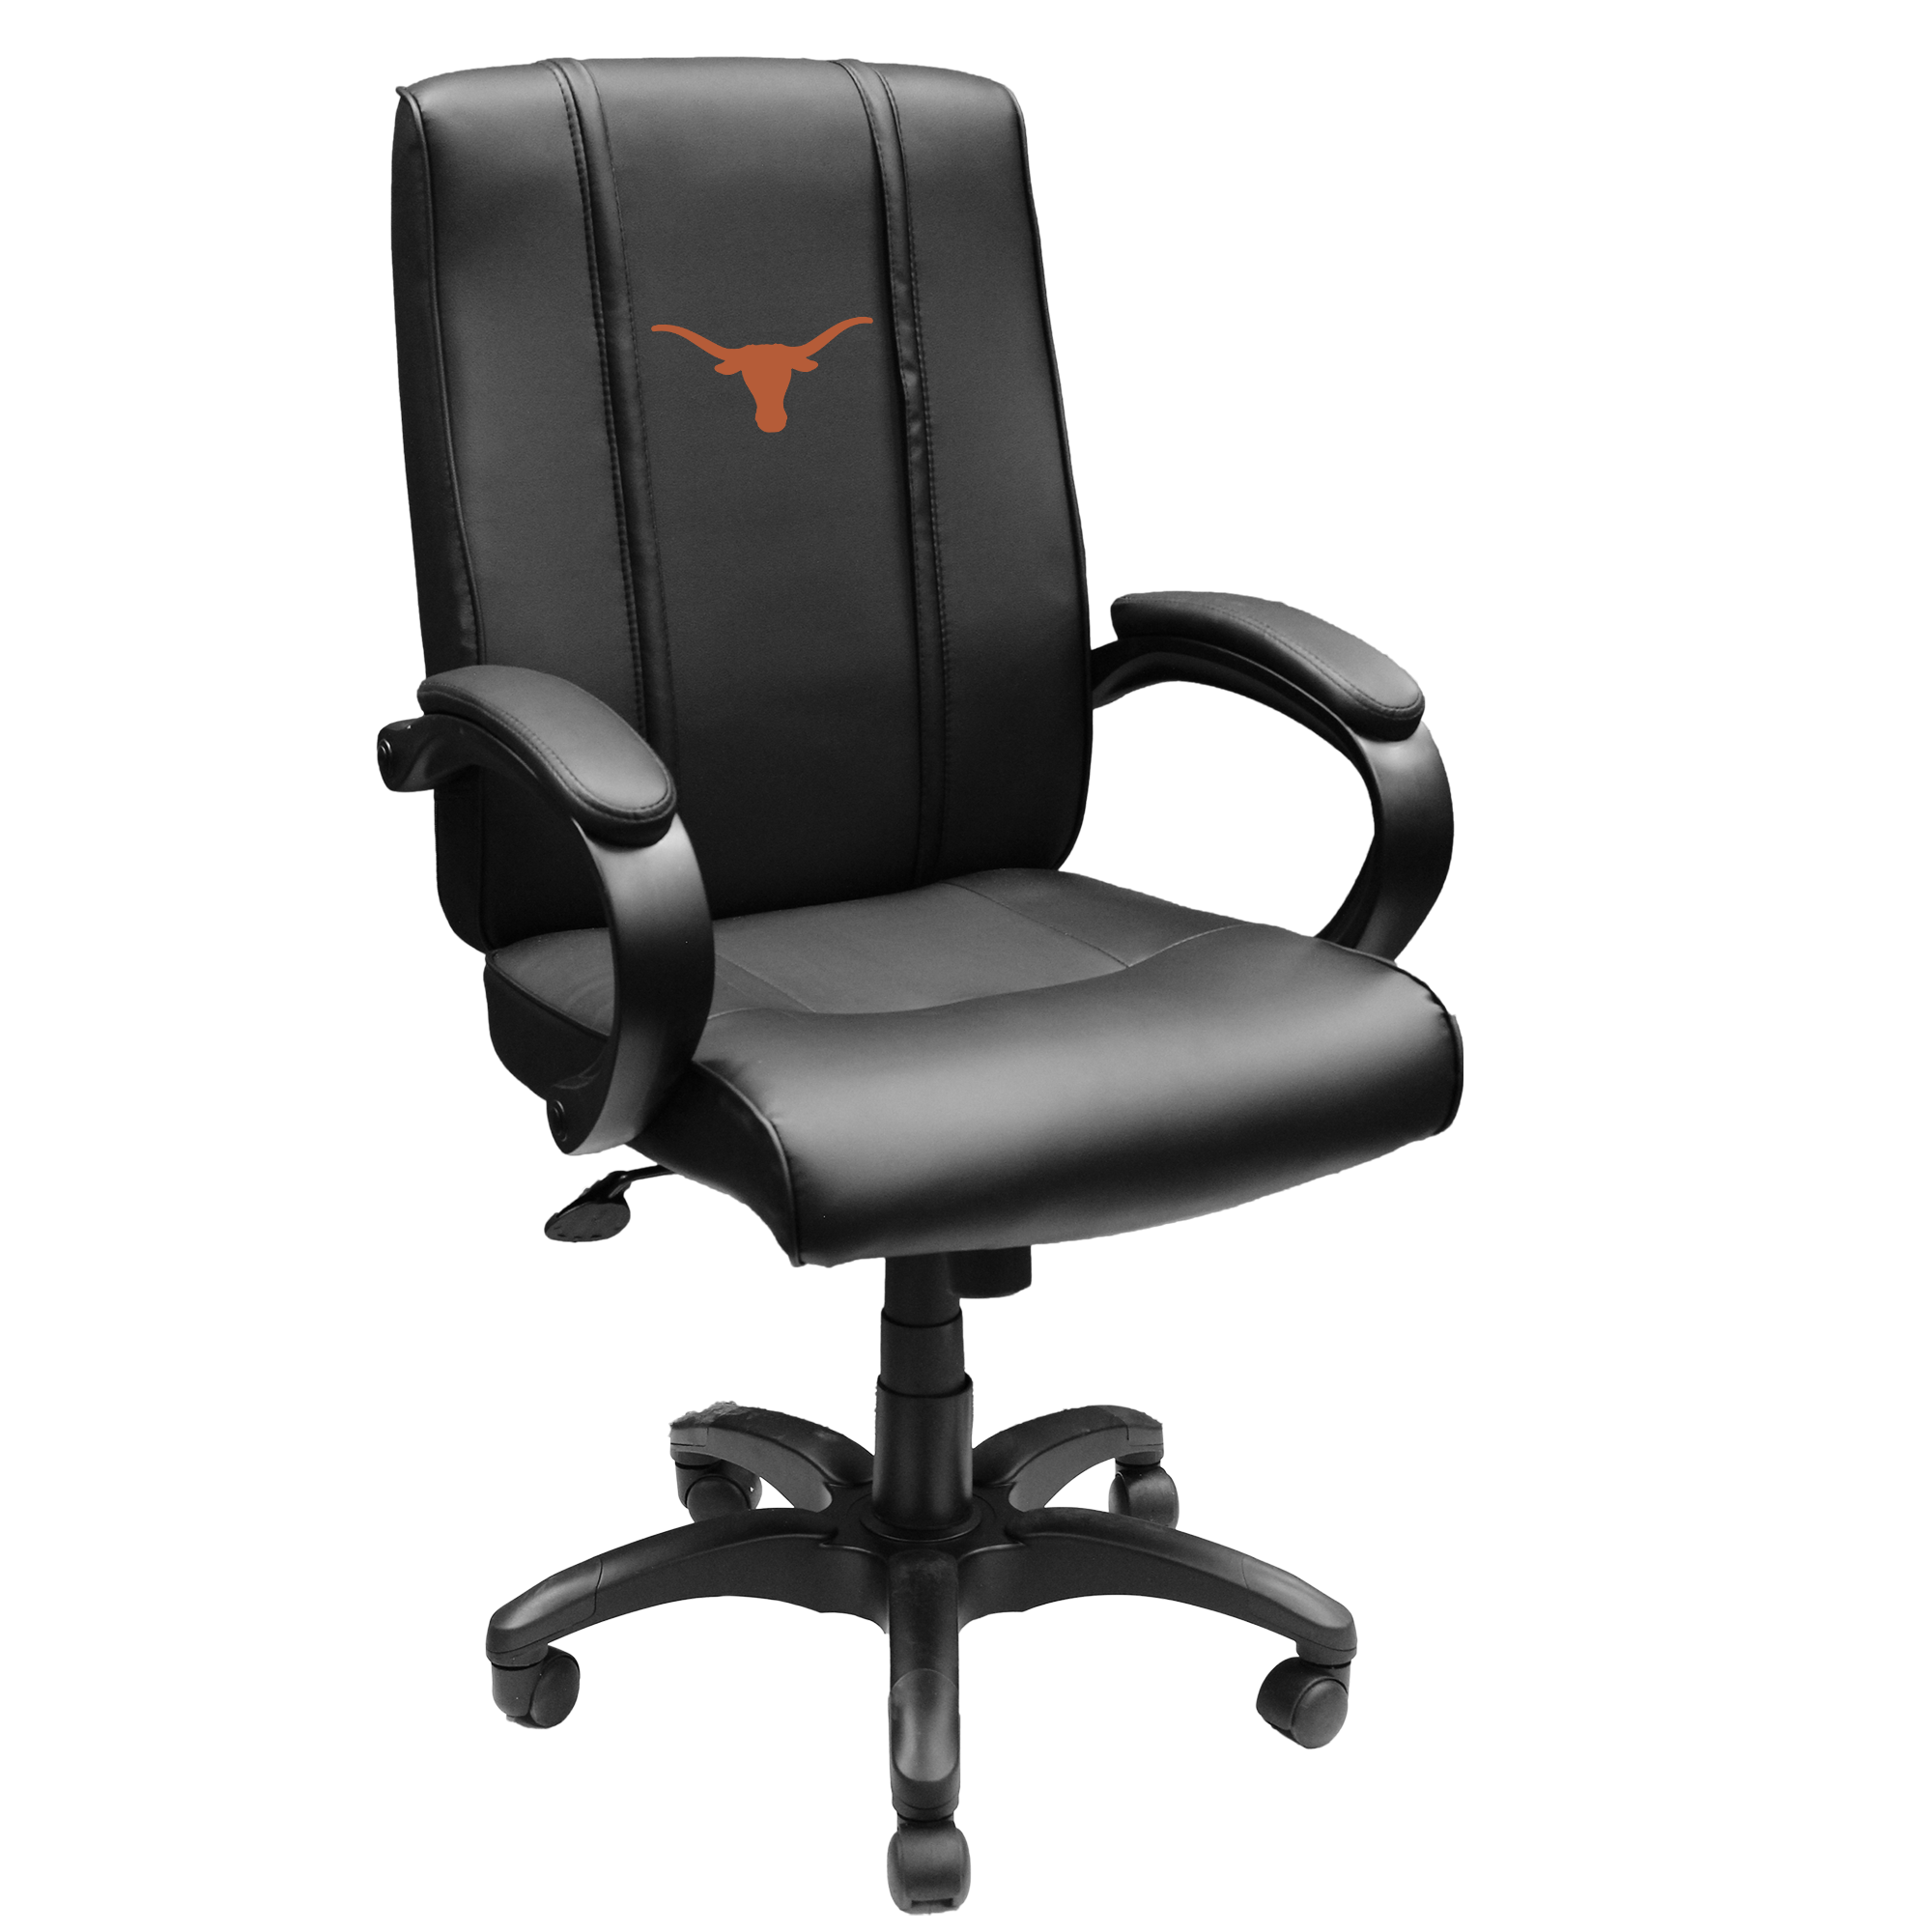 Office Chair 1000 with Texas Longhorns Primary